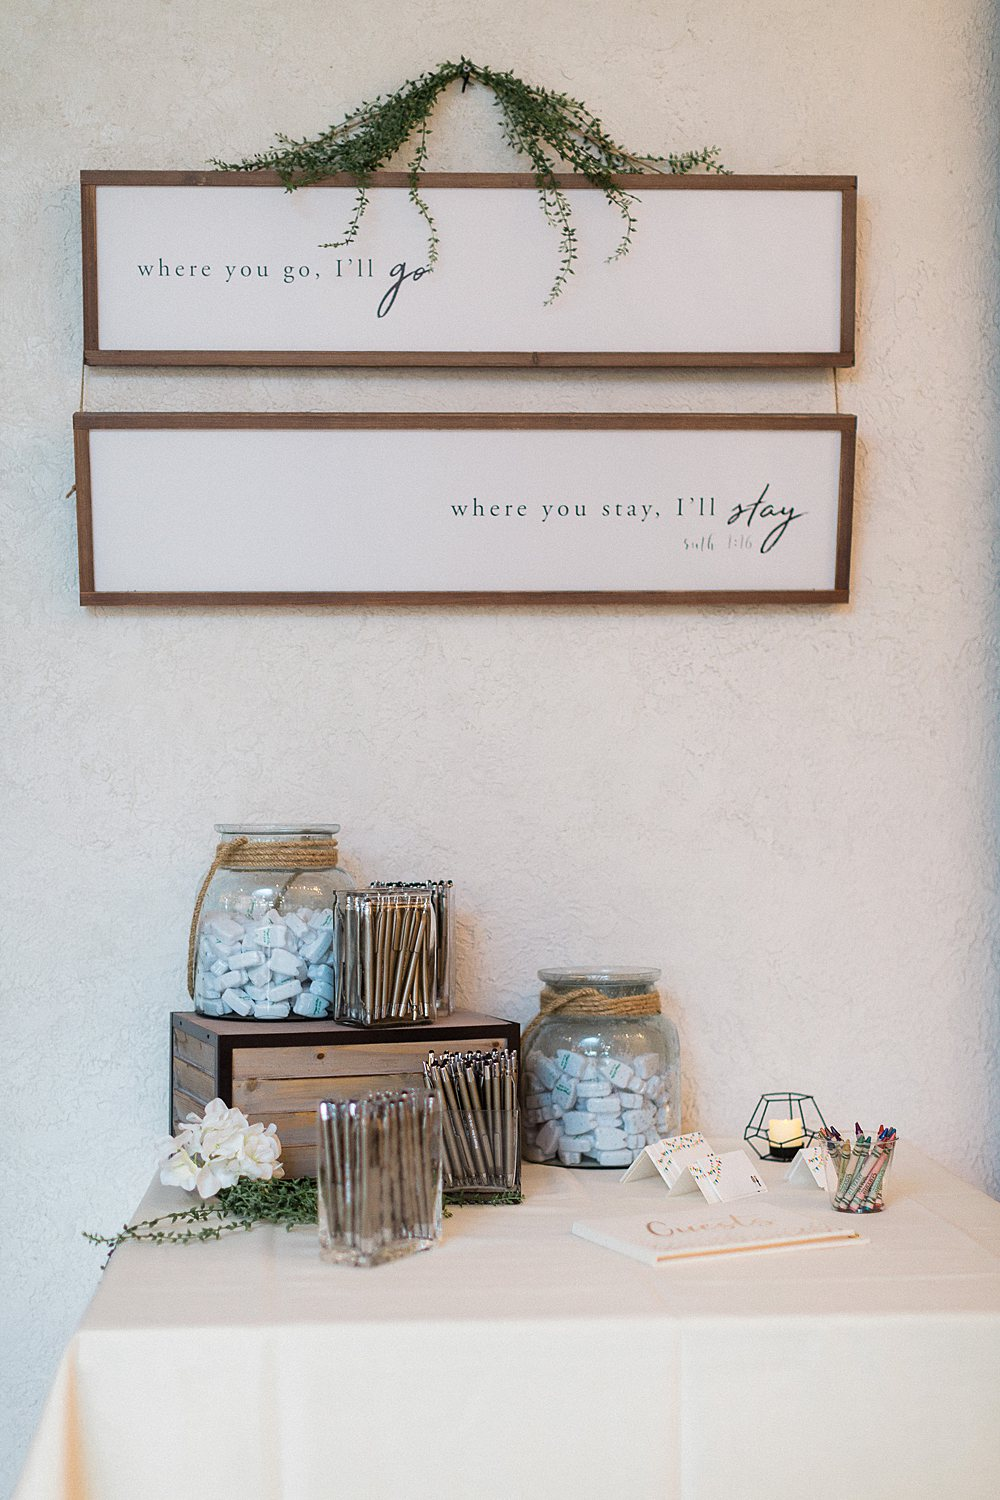 North_Central_Wisconsin_Event_Wedding_Venues_Fall_Weddings_The_Bailiwick_Venue_James-Stokes-Photography068.jpg